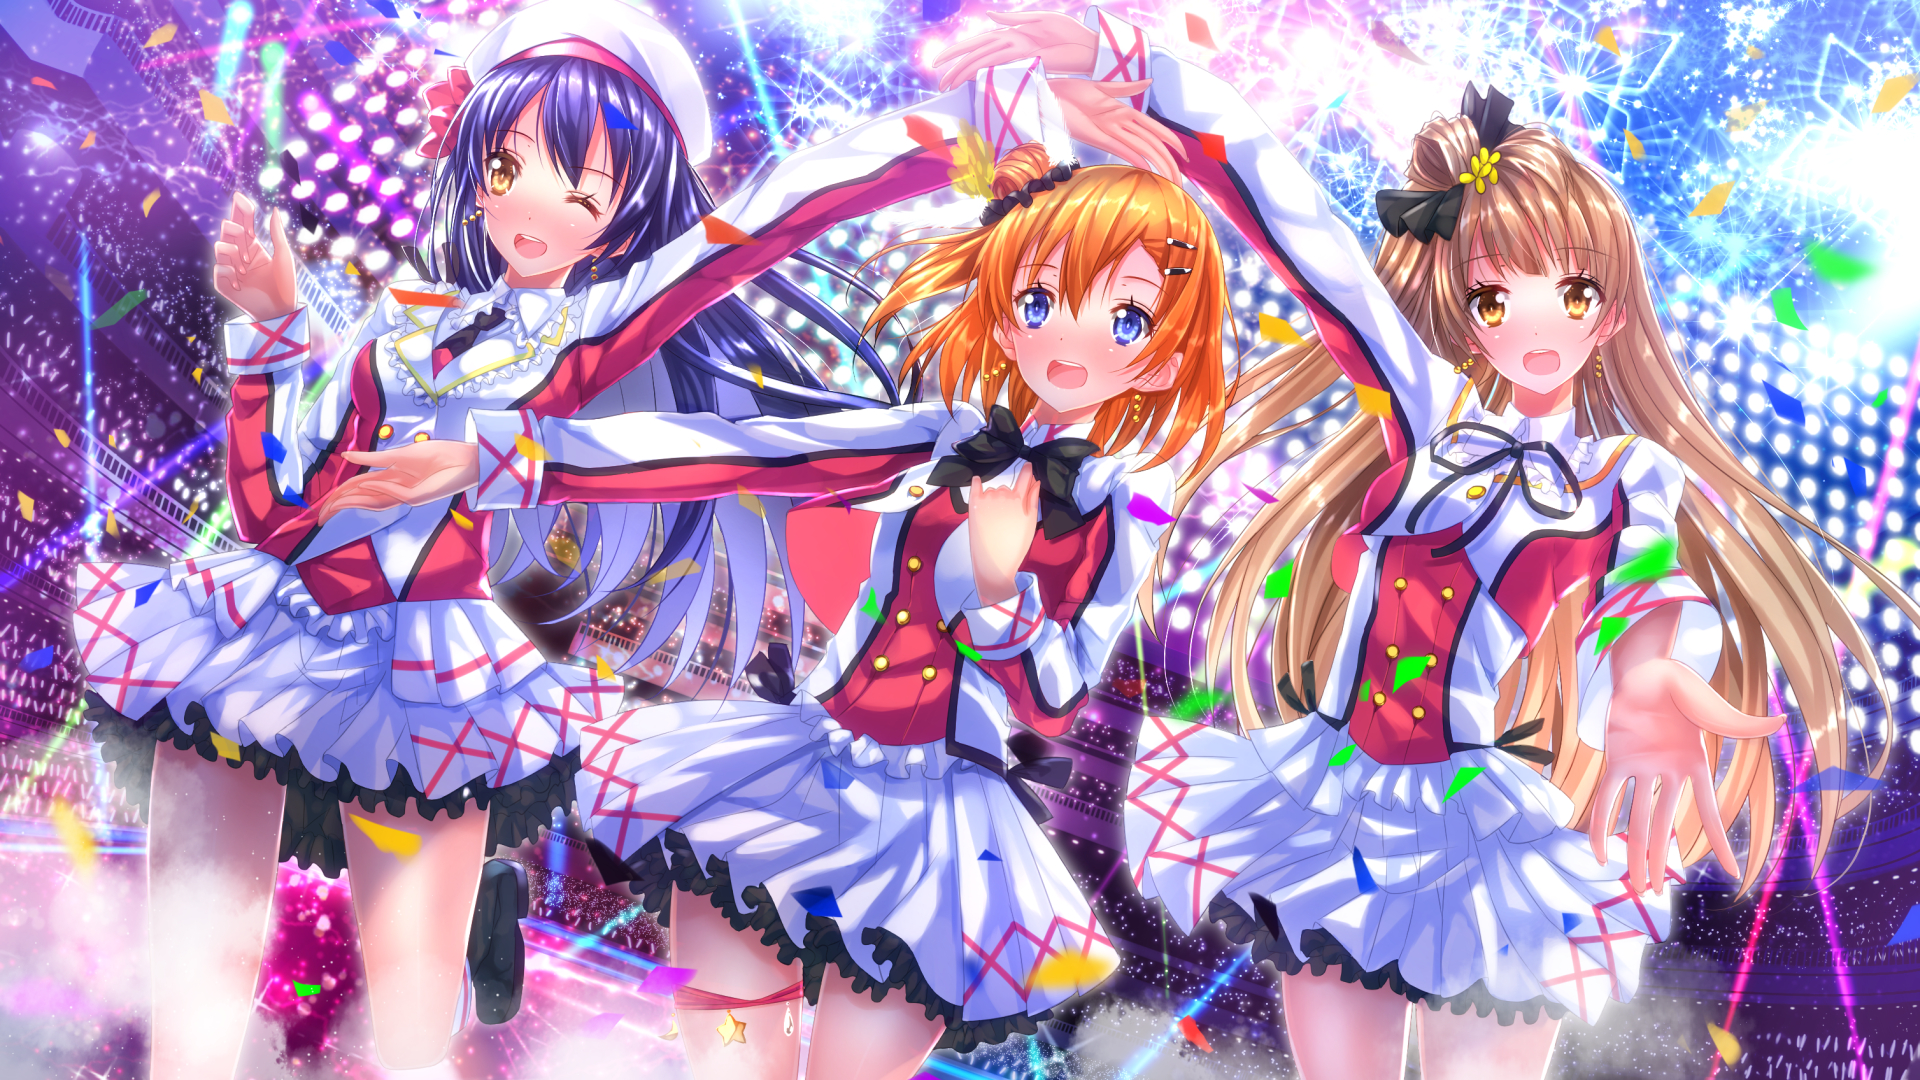 Love Live Hd Wallpaper 1703573 Zerochan Anime Image Board